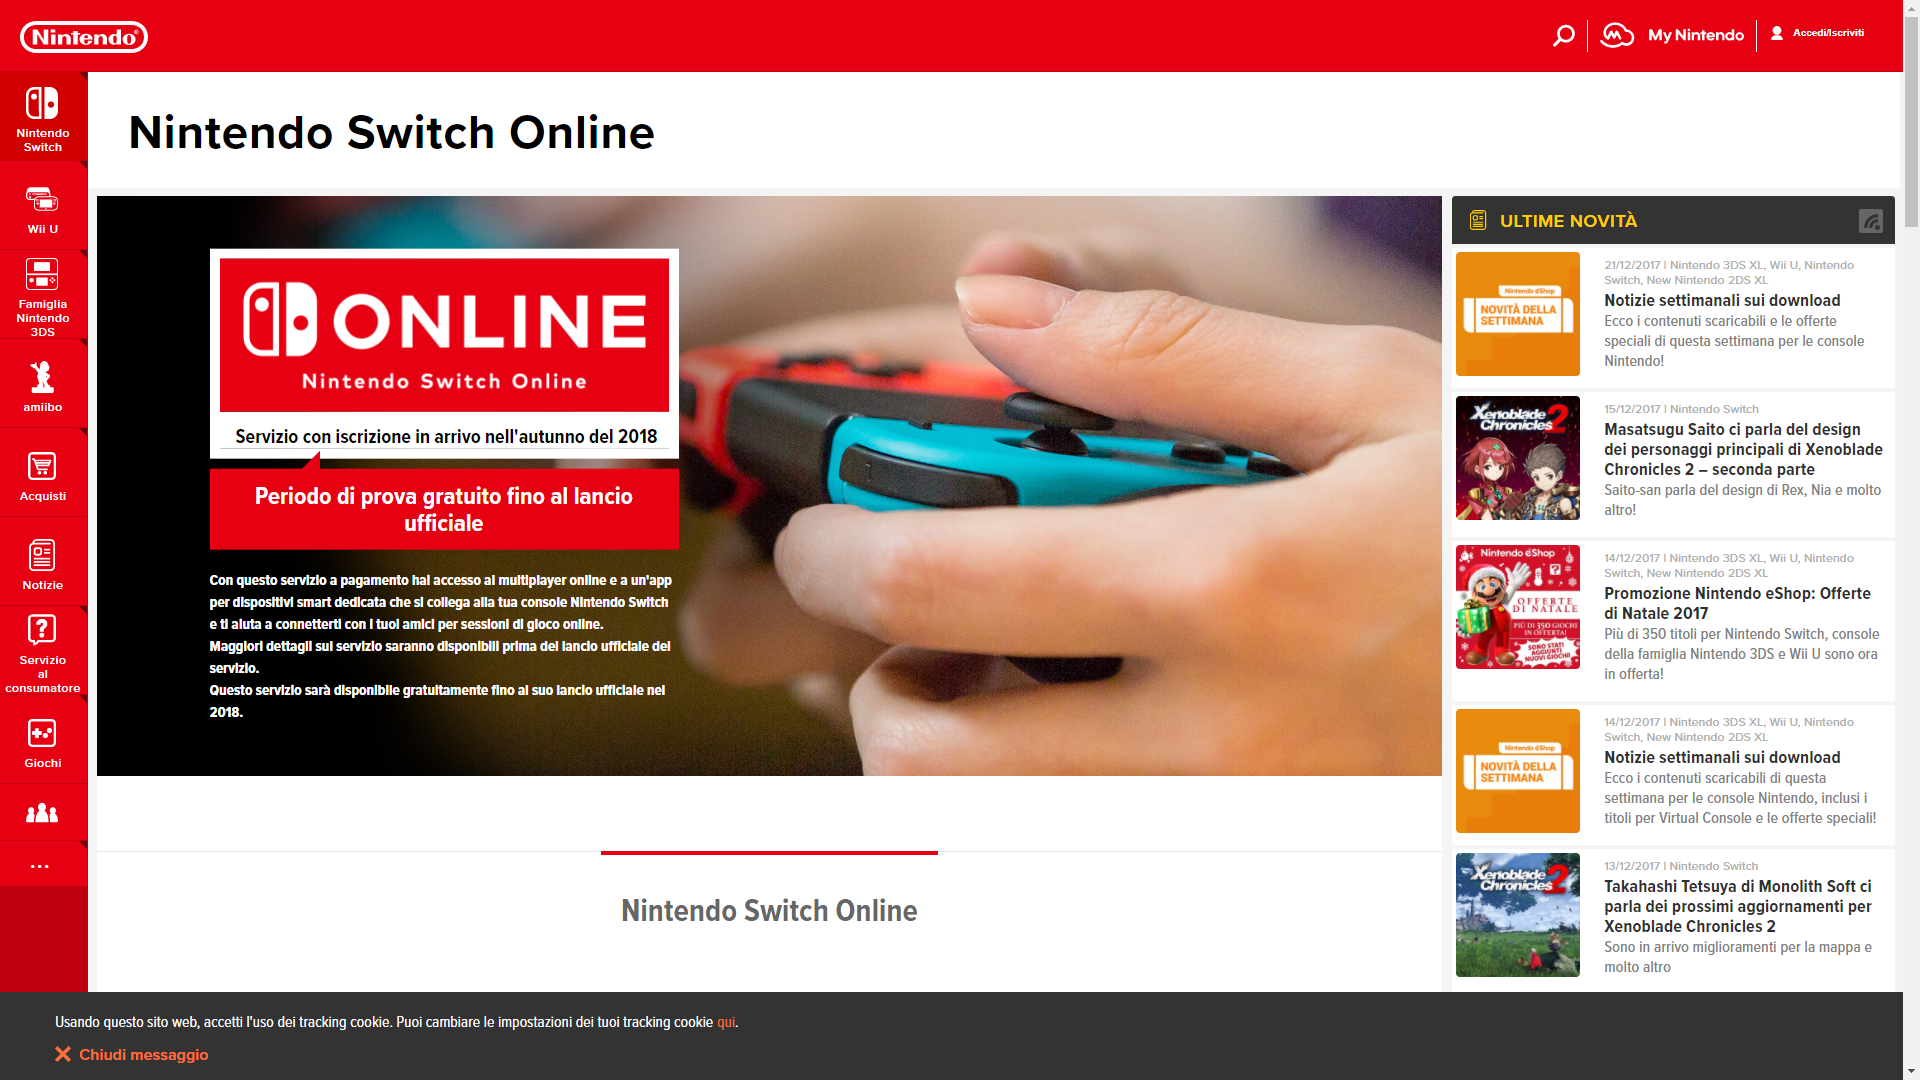 Paid Nintendo Switch Online Service Delayed To Fall 2018, According ...